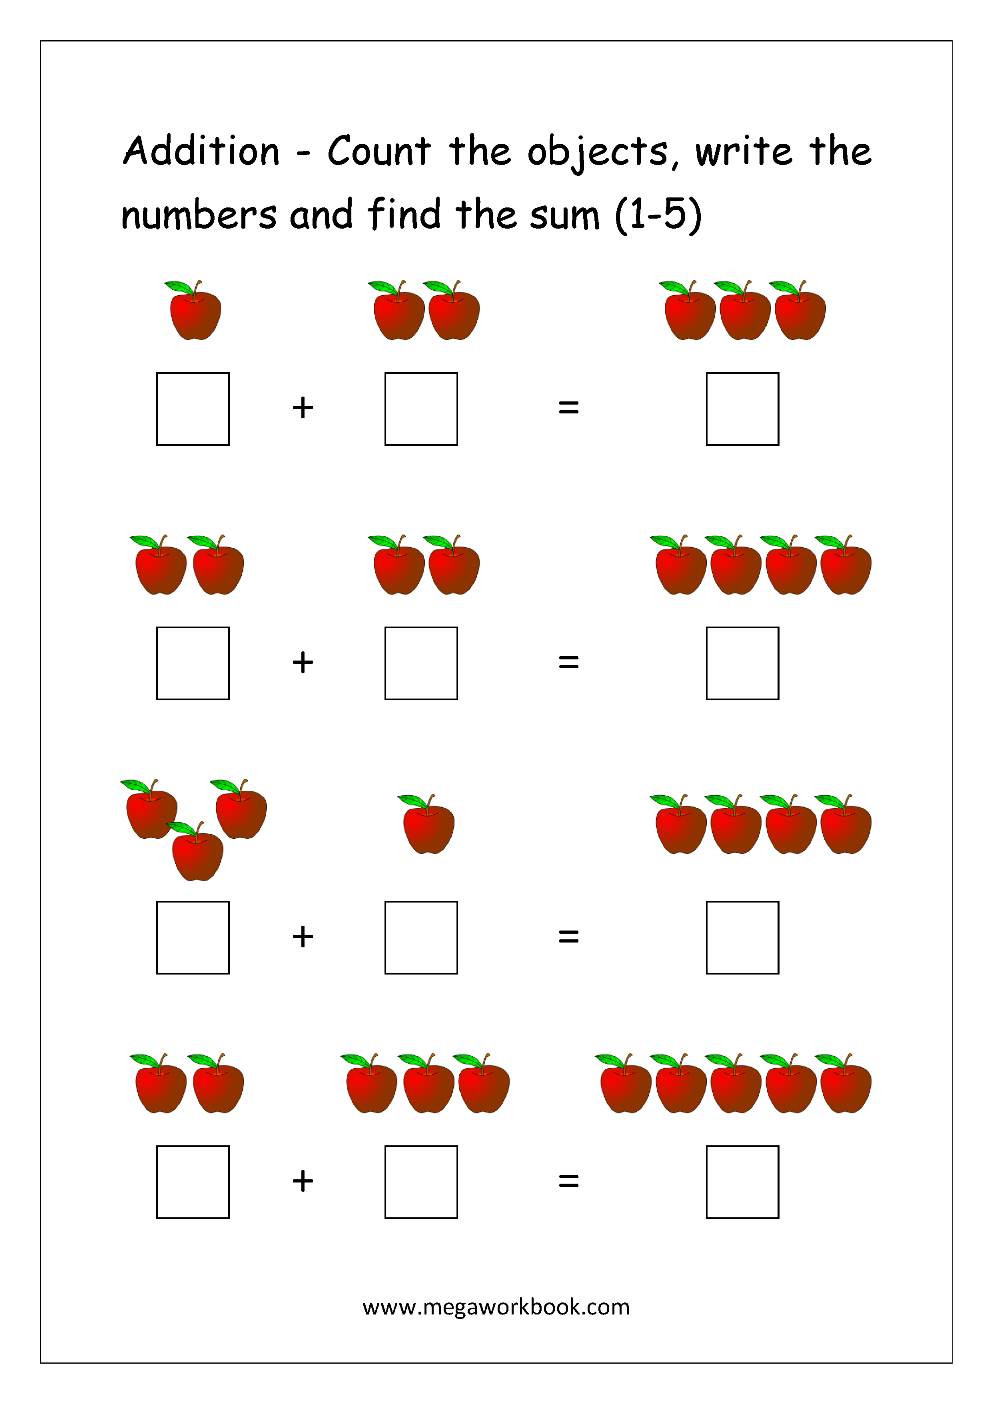 Free Printable Number Addition Worksheets 110 For Kindergarten Along With Counting Techniques Worksheet